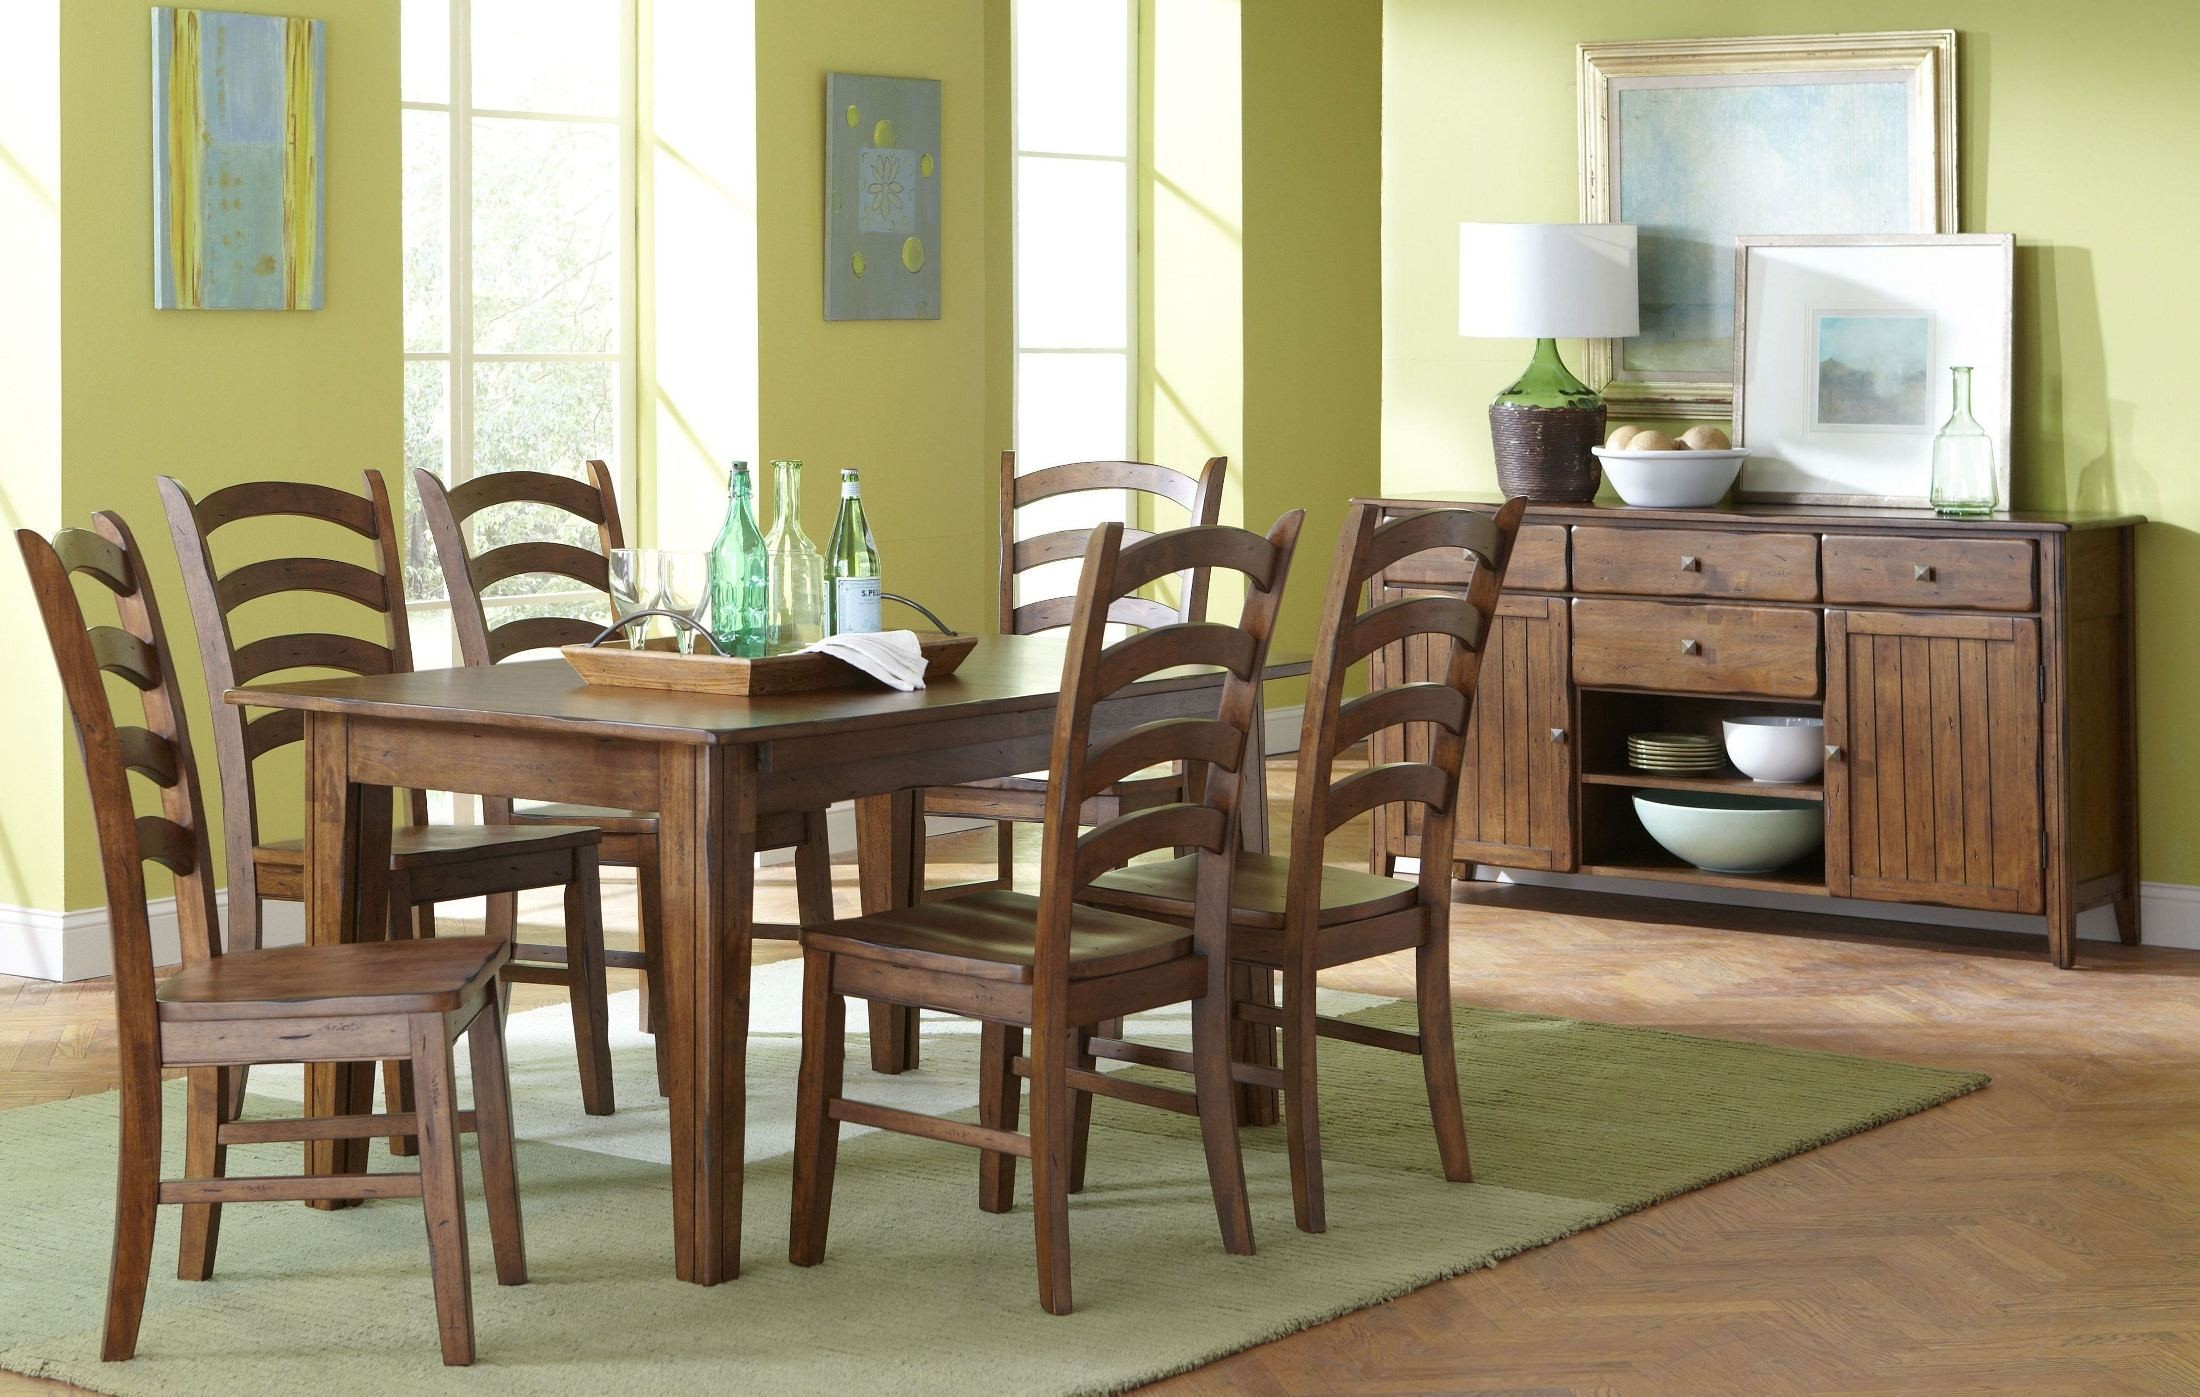 Overland Extendable Rectangular Dining Room Set D293 31 Largo Furniture